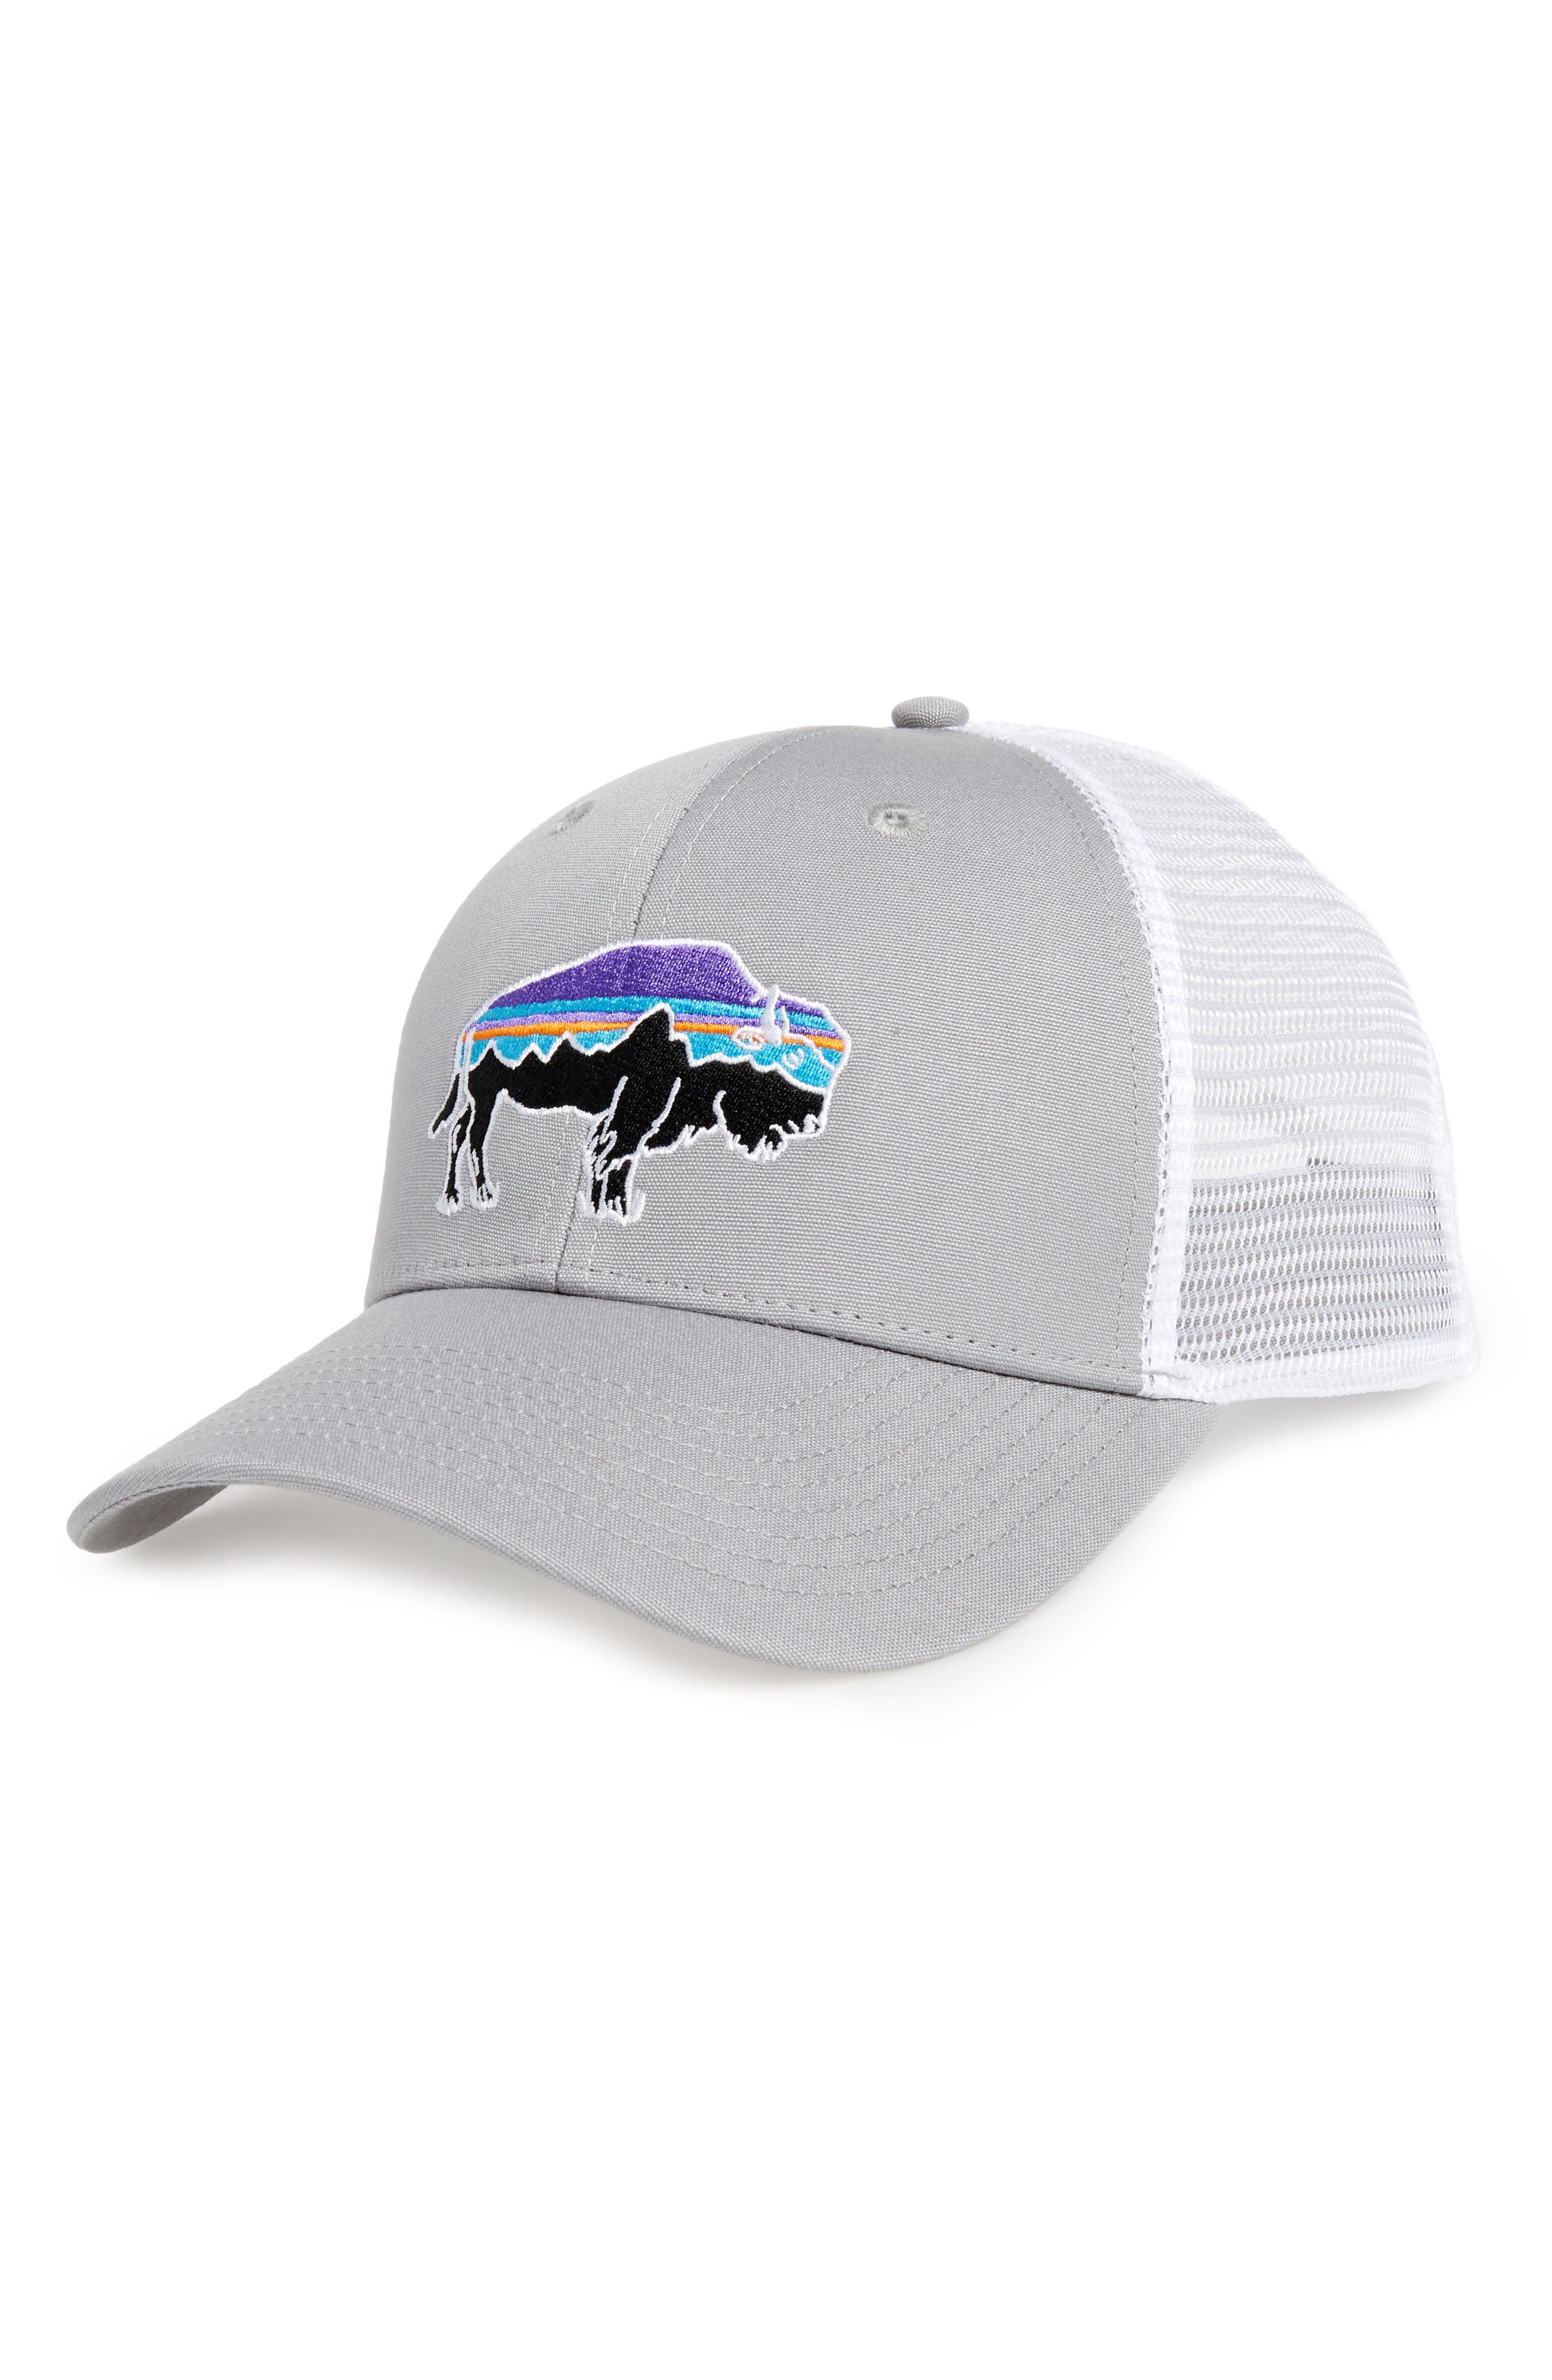 PATAGONIA 'Fitz Roy Bison' Trucker Hat, Main, color, 021